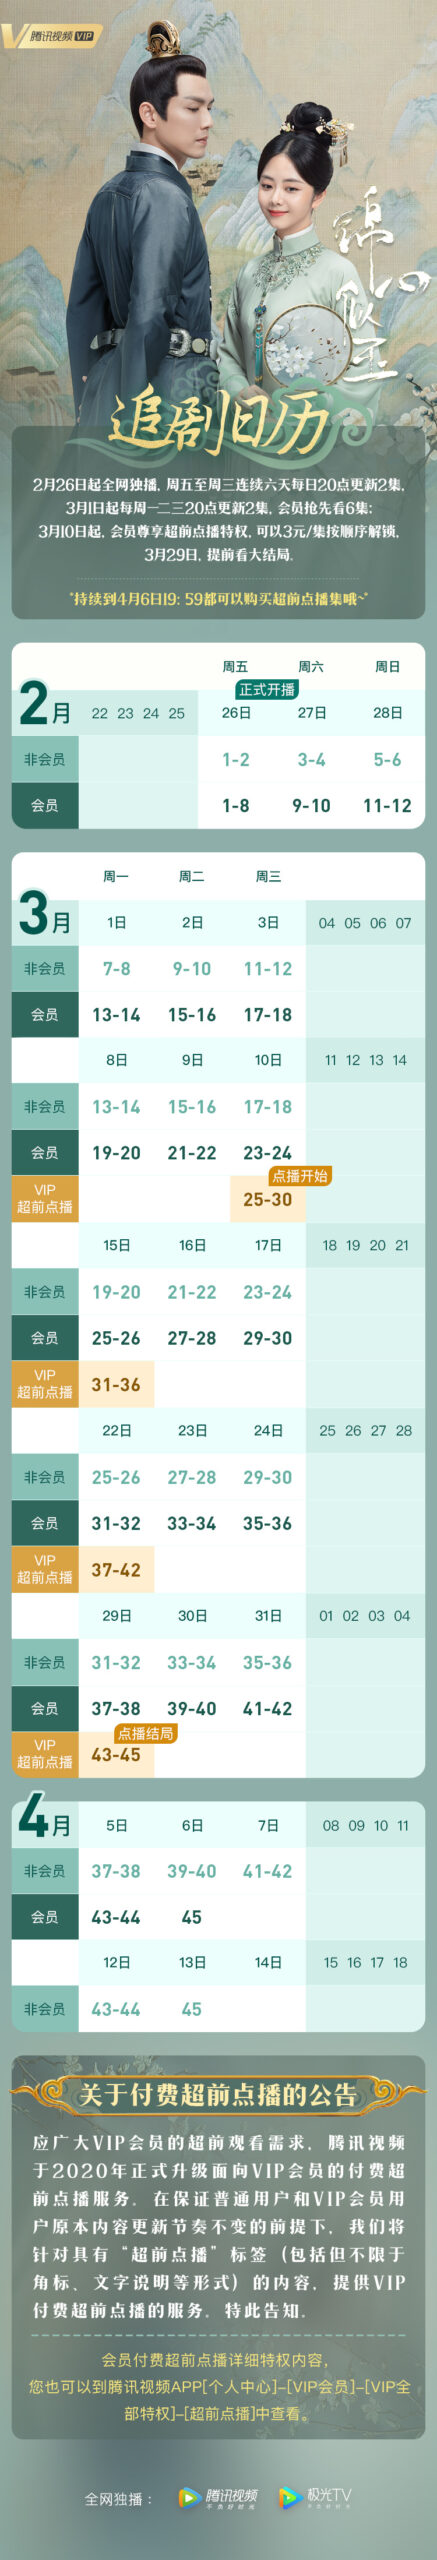 The Sword And The Brocade Chinese Drama Airing Calendar